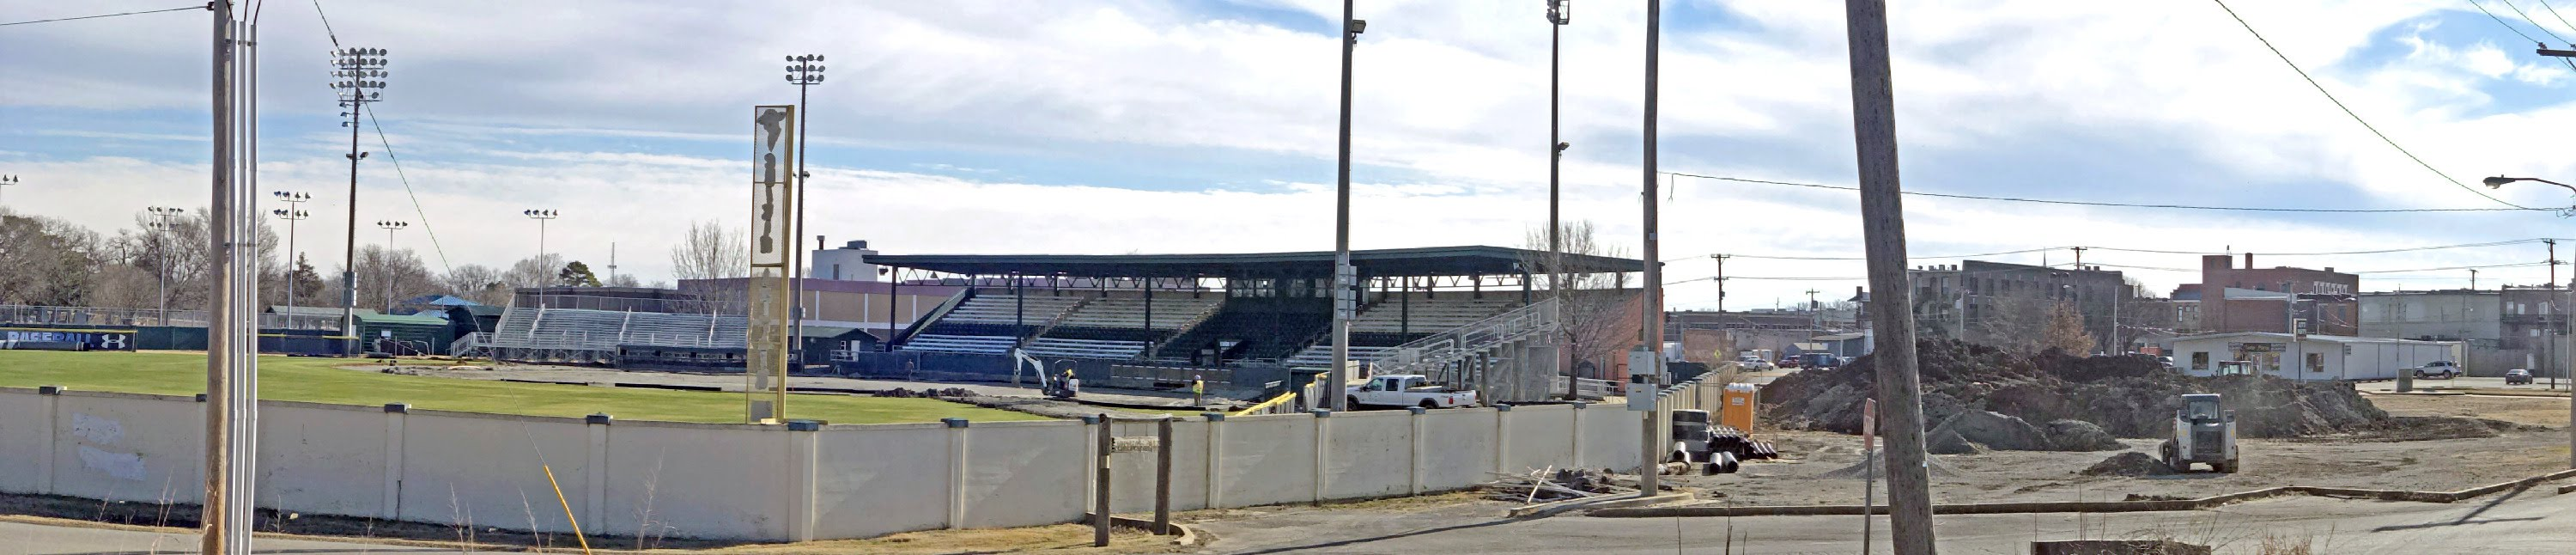 Doenges Stadium infield removal